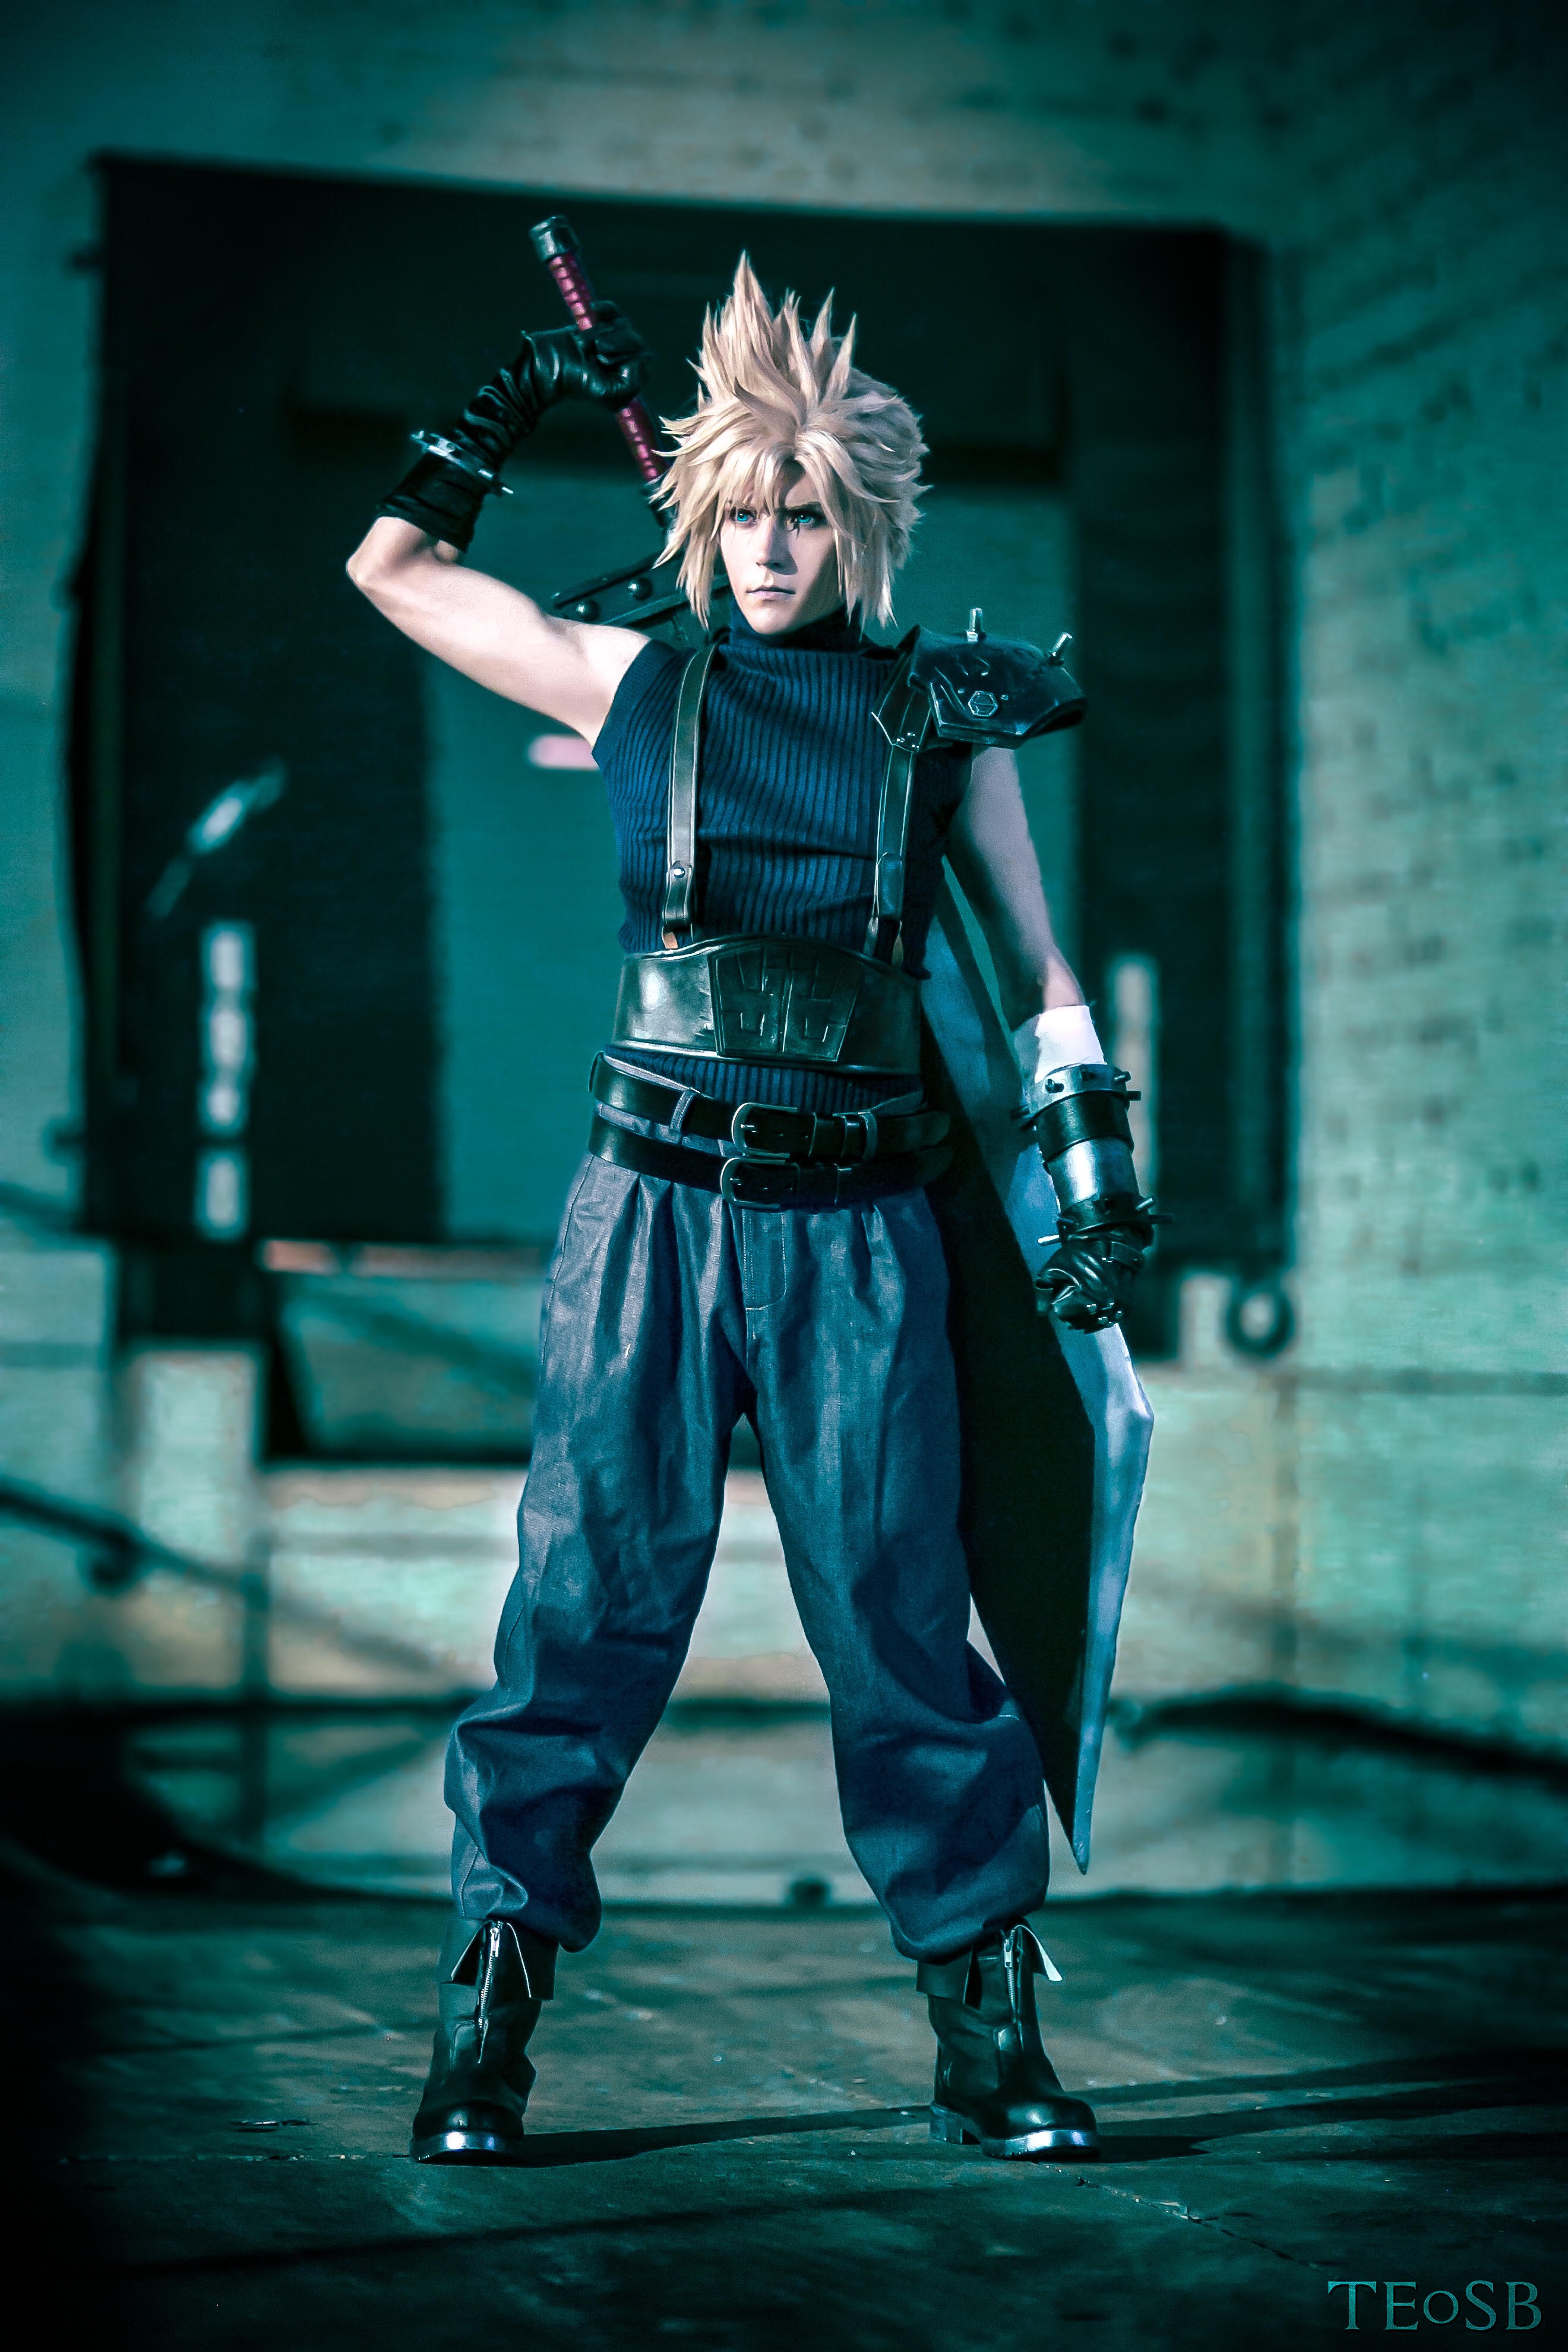 cloud strife final fantasy vii print online store powered by